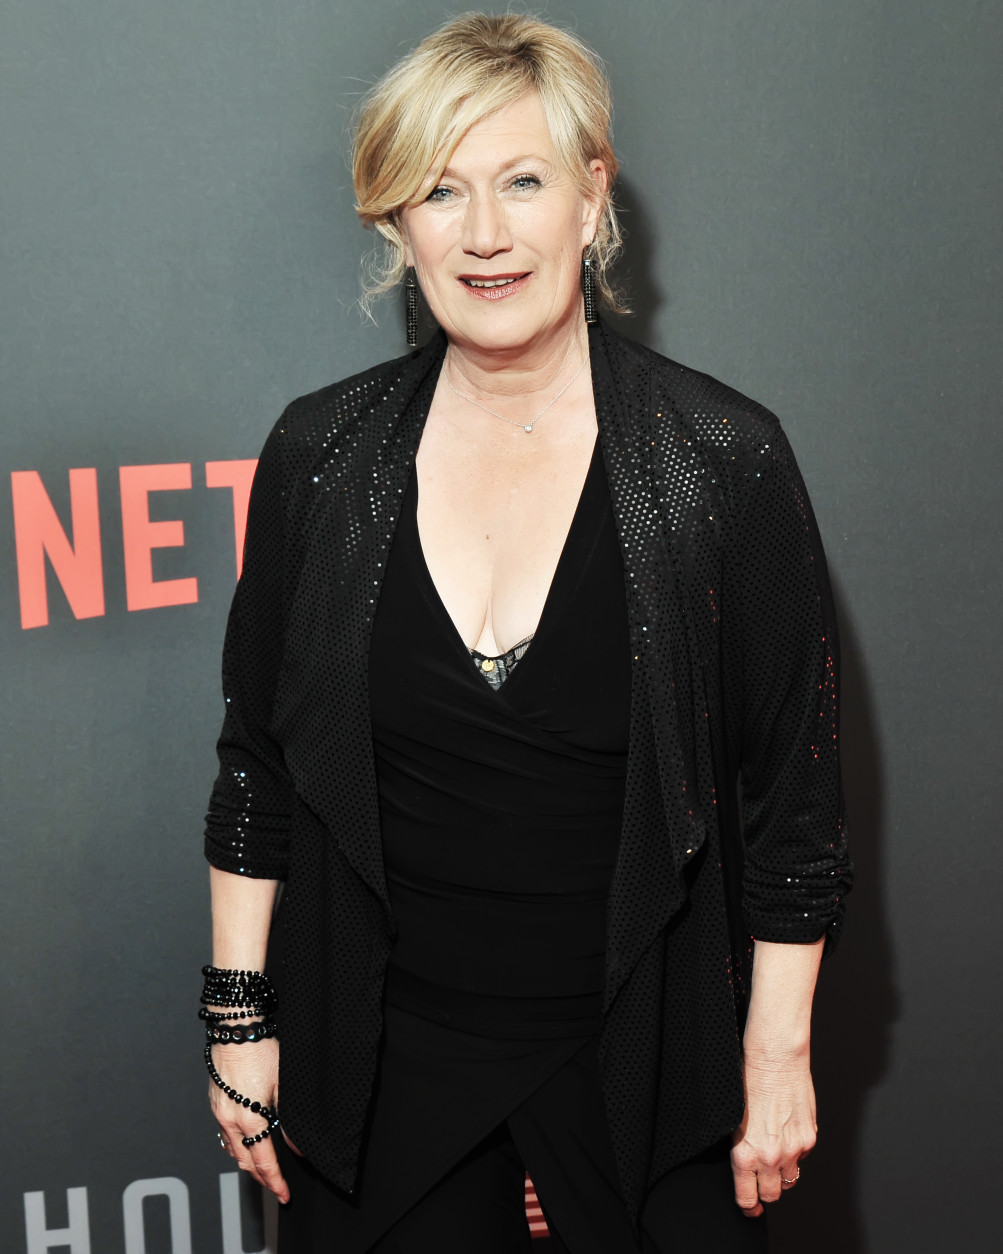 """House of Cards"" castmember Jayne Atkinson at the National Portrait Gallery in D.C. on Feb. 22, 2016.  (Courtesy Shannon Finney, www.shannonfinneyphotography.com)"